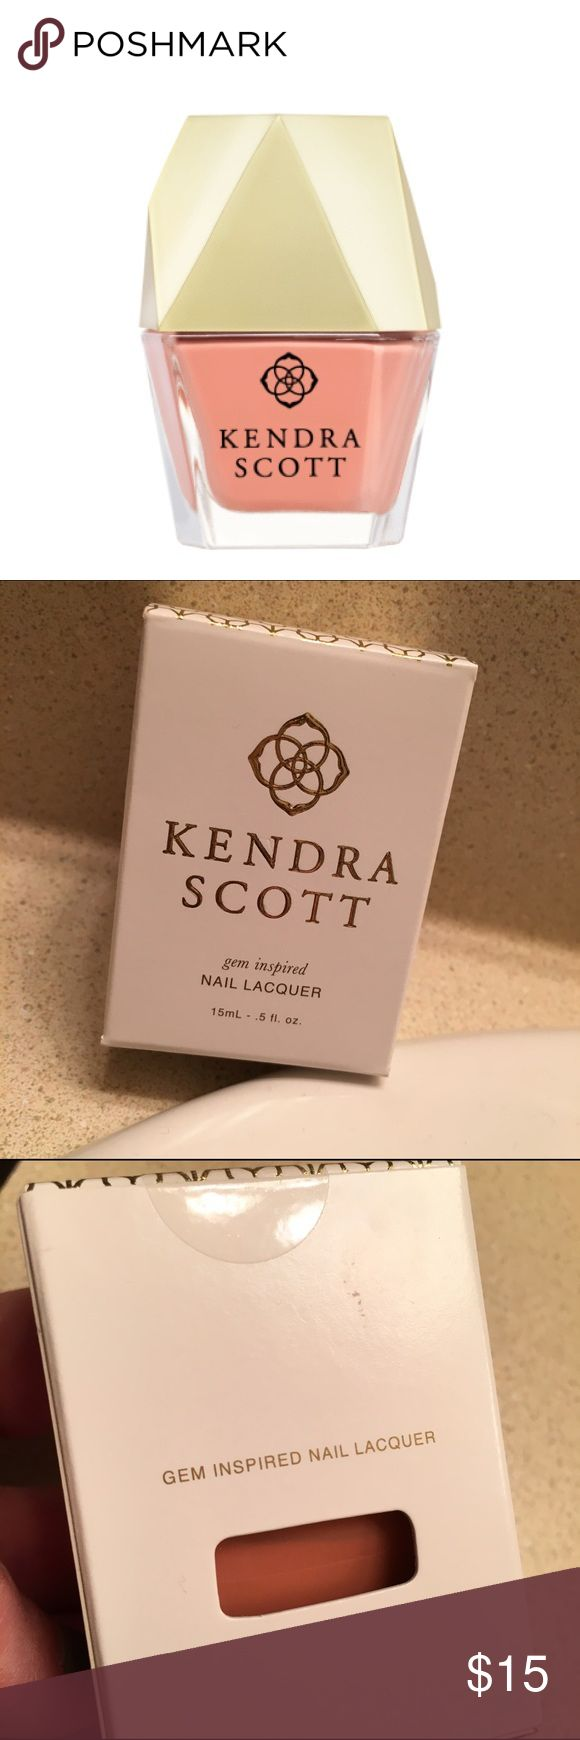 NWT Kendra Scott Peach Nail Polish New, never opened Peach nail polish! Kendra Scott Other